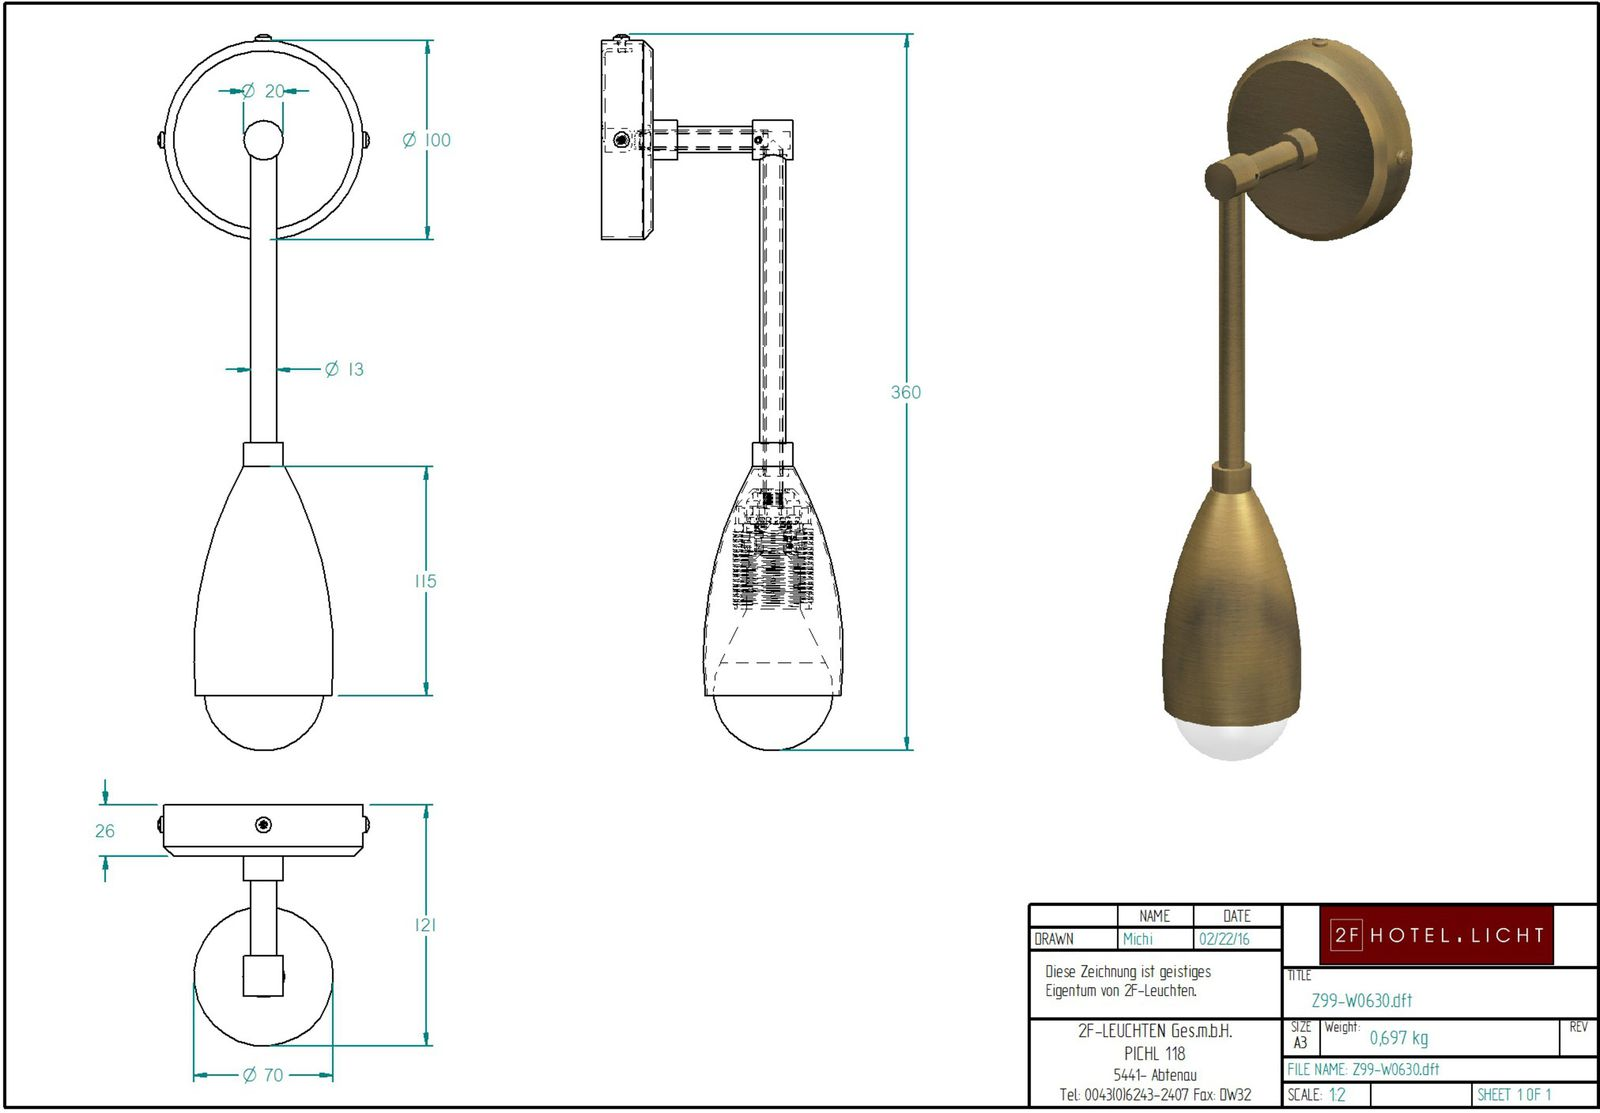 wall, L:100, B:120, H:360 surface metal: brushed brass, socket: 1x E27, bulb: 1x E27 max. 20W / 230V, triac dimmable